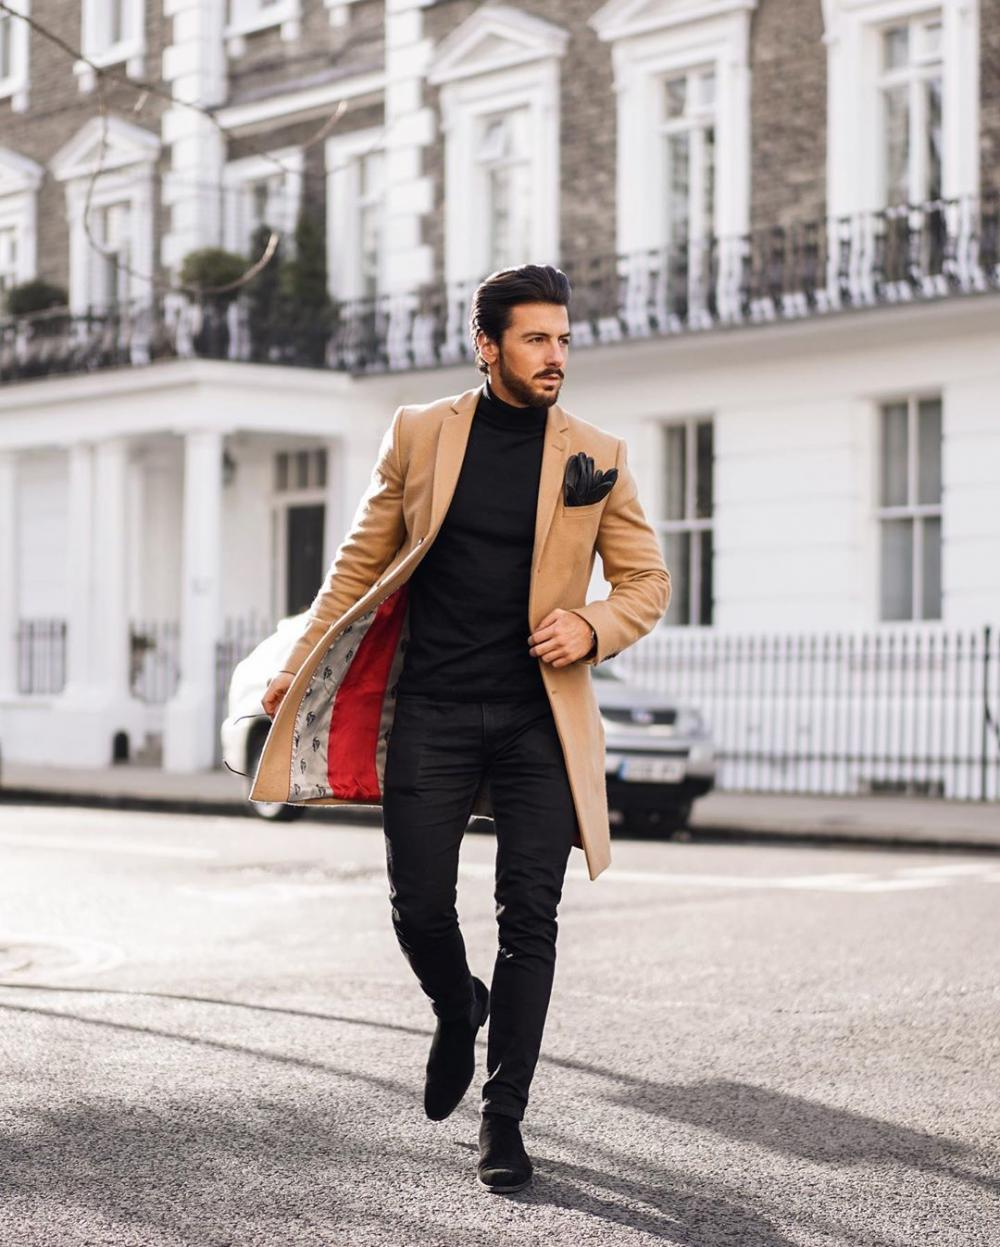 15 best stylish men's looks for fall. Following the fashion trends of the season